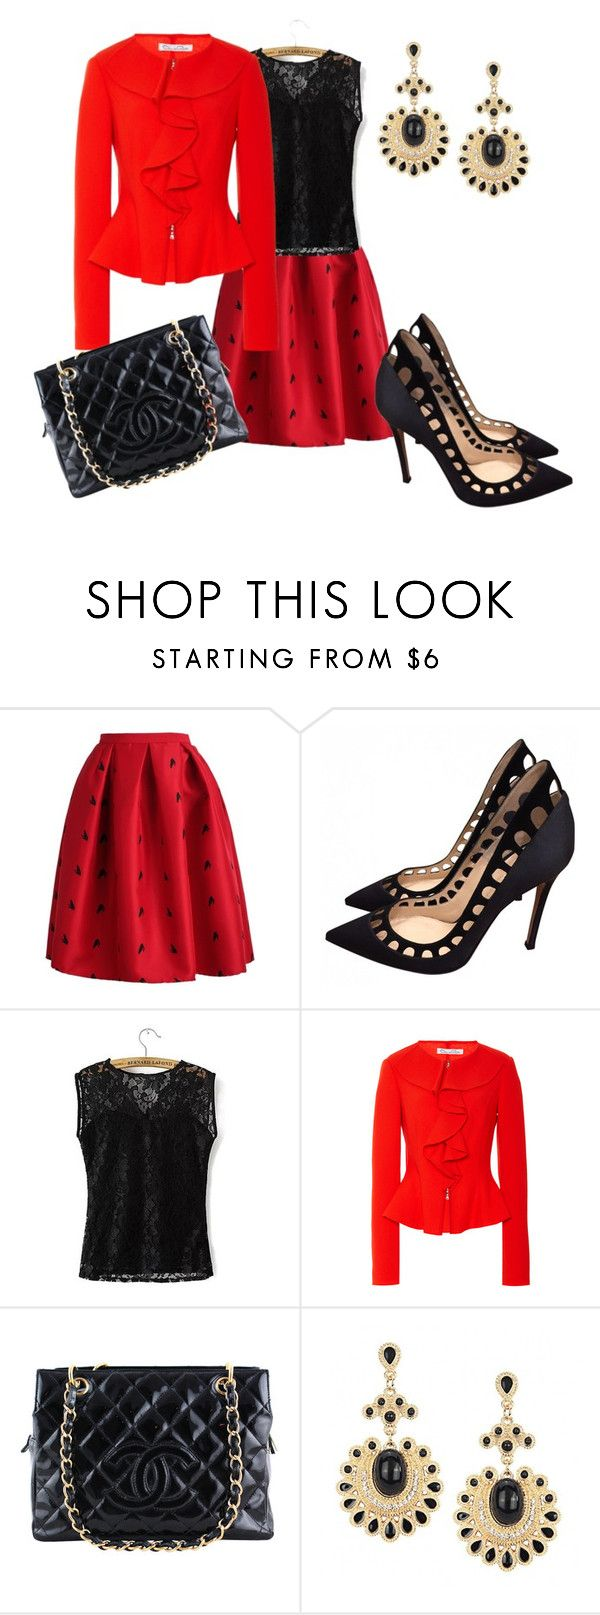 """""""Untitled #950"""" by cookmary ❤ liked on Polyvore featuring Gianvito Rossi, Oscar de la Renta and Chanel"""